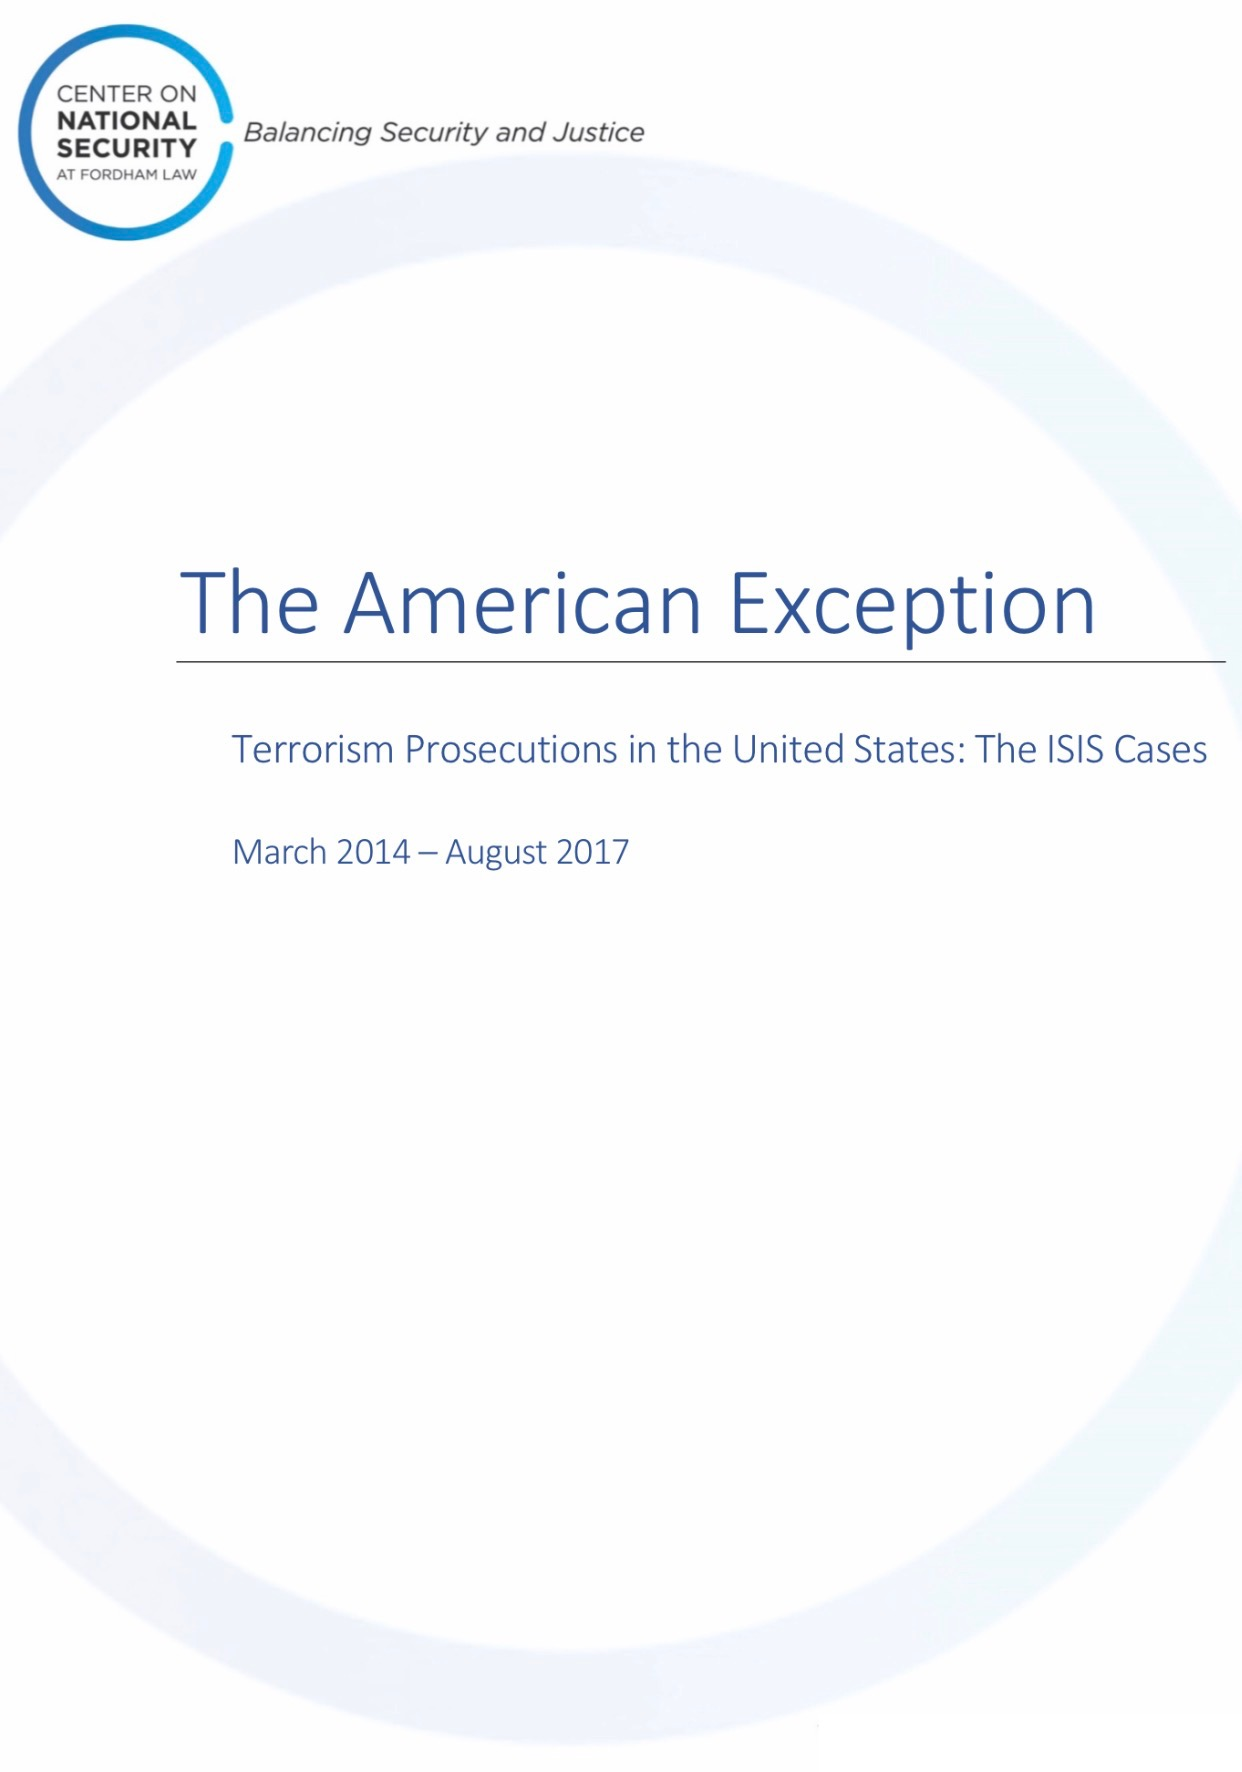 The American Exception.jpg